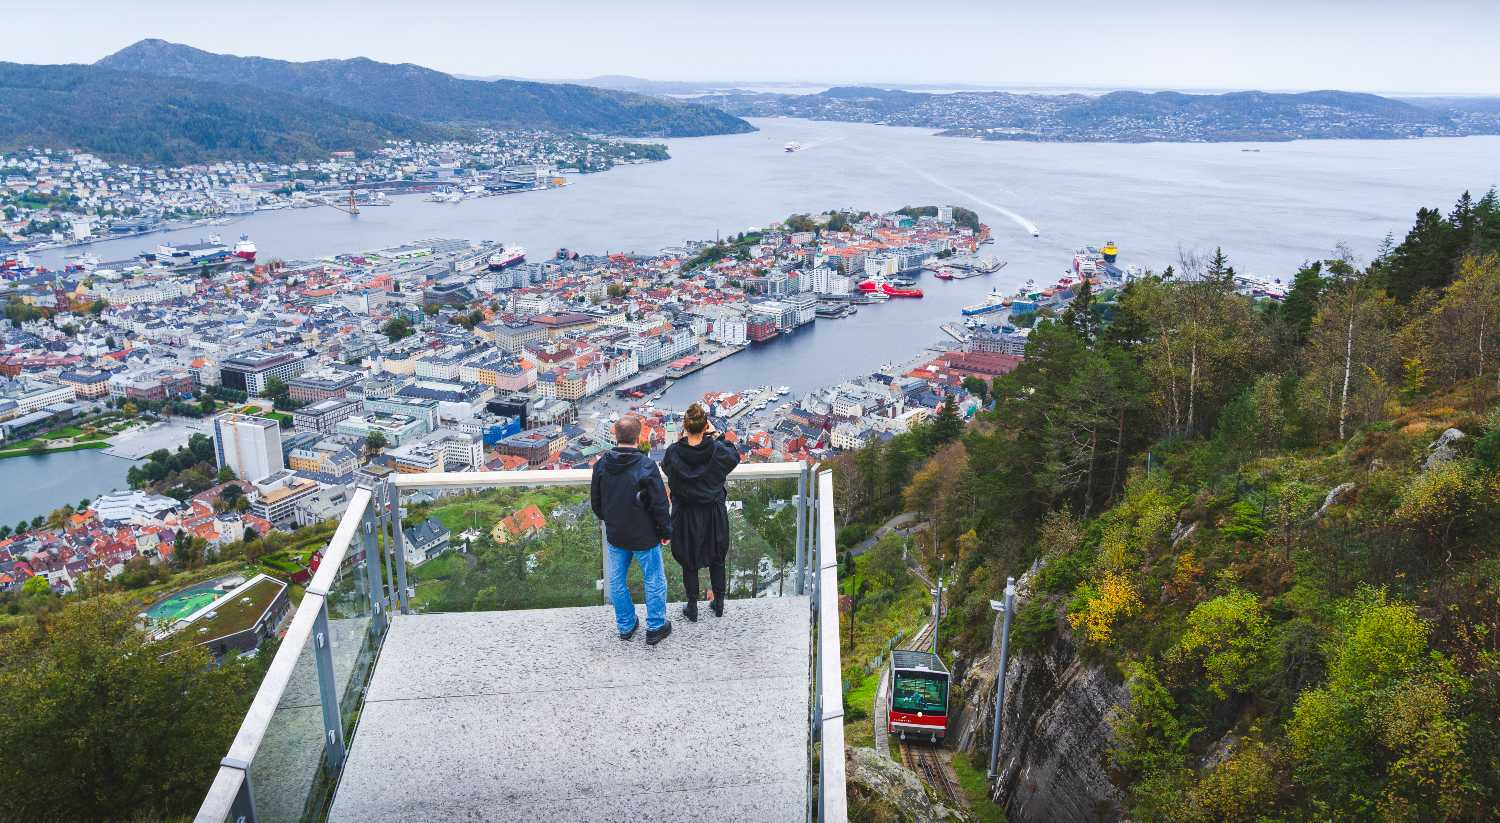 Things to do in Bergen - hiking at Fløyen